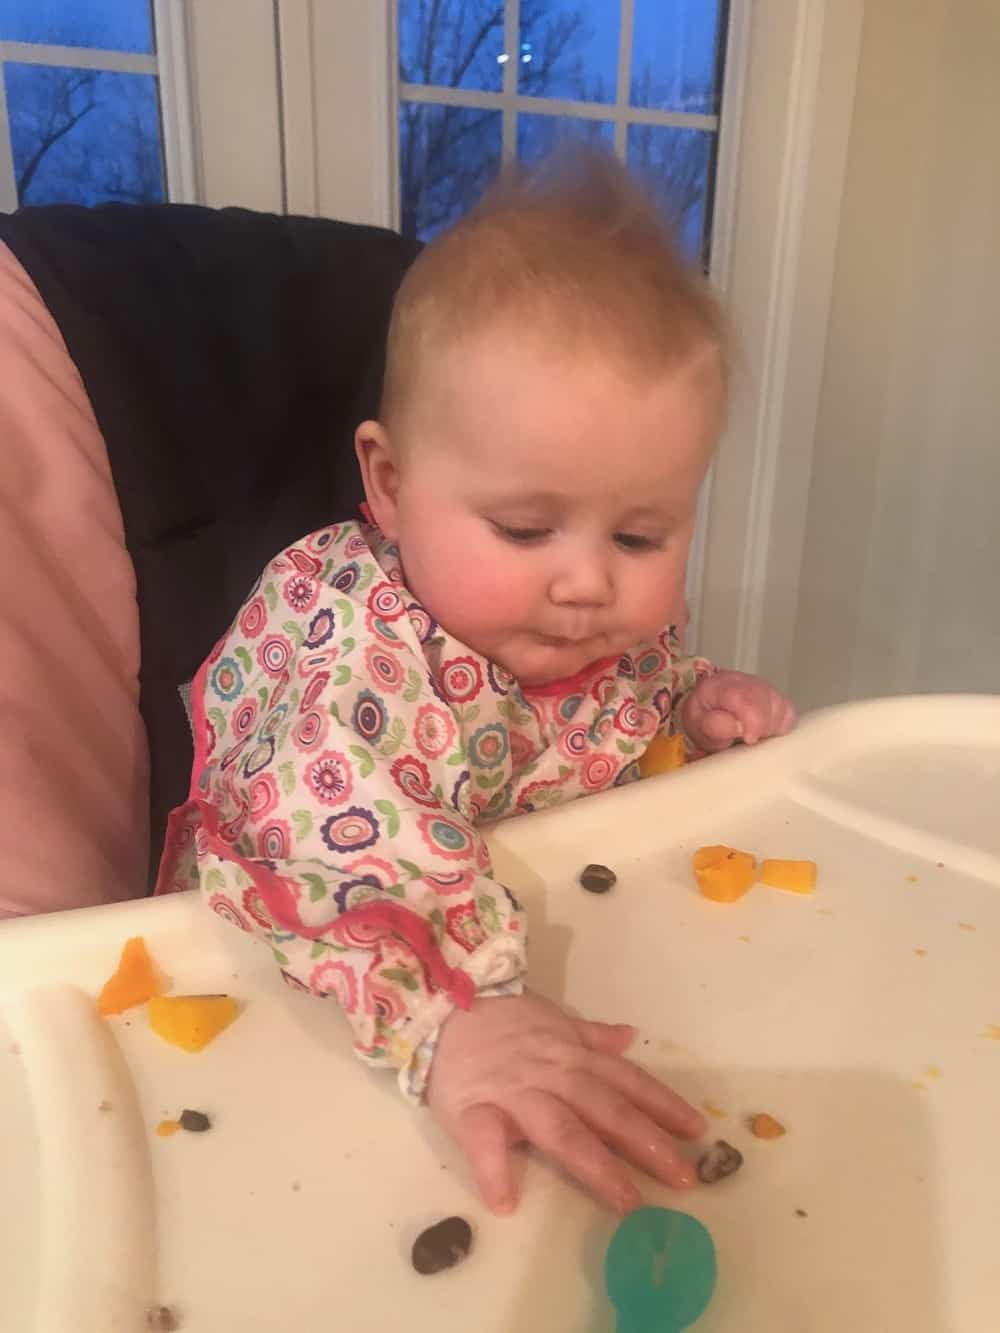 baby wearing long sleeved bib eating solids at high chair